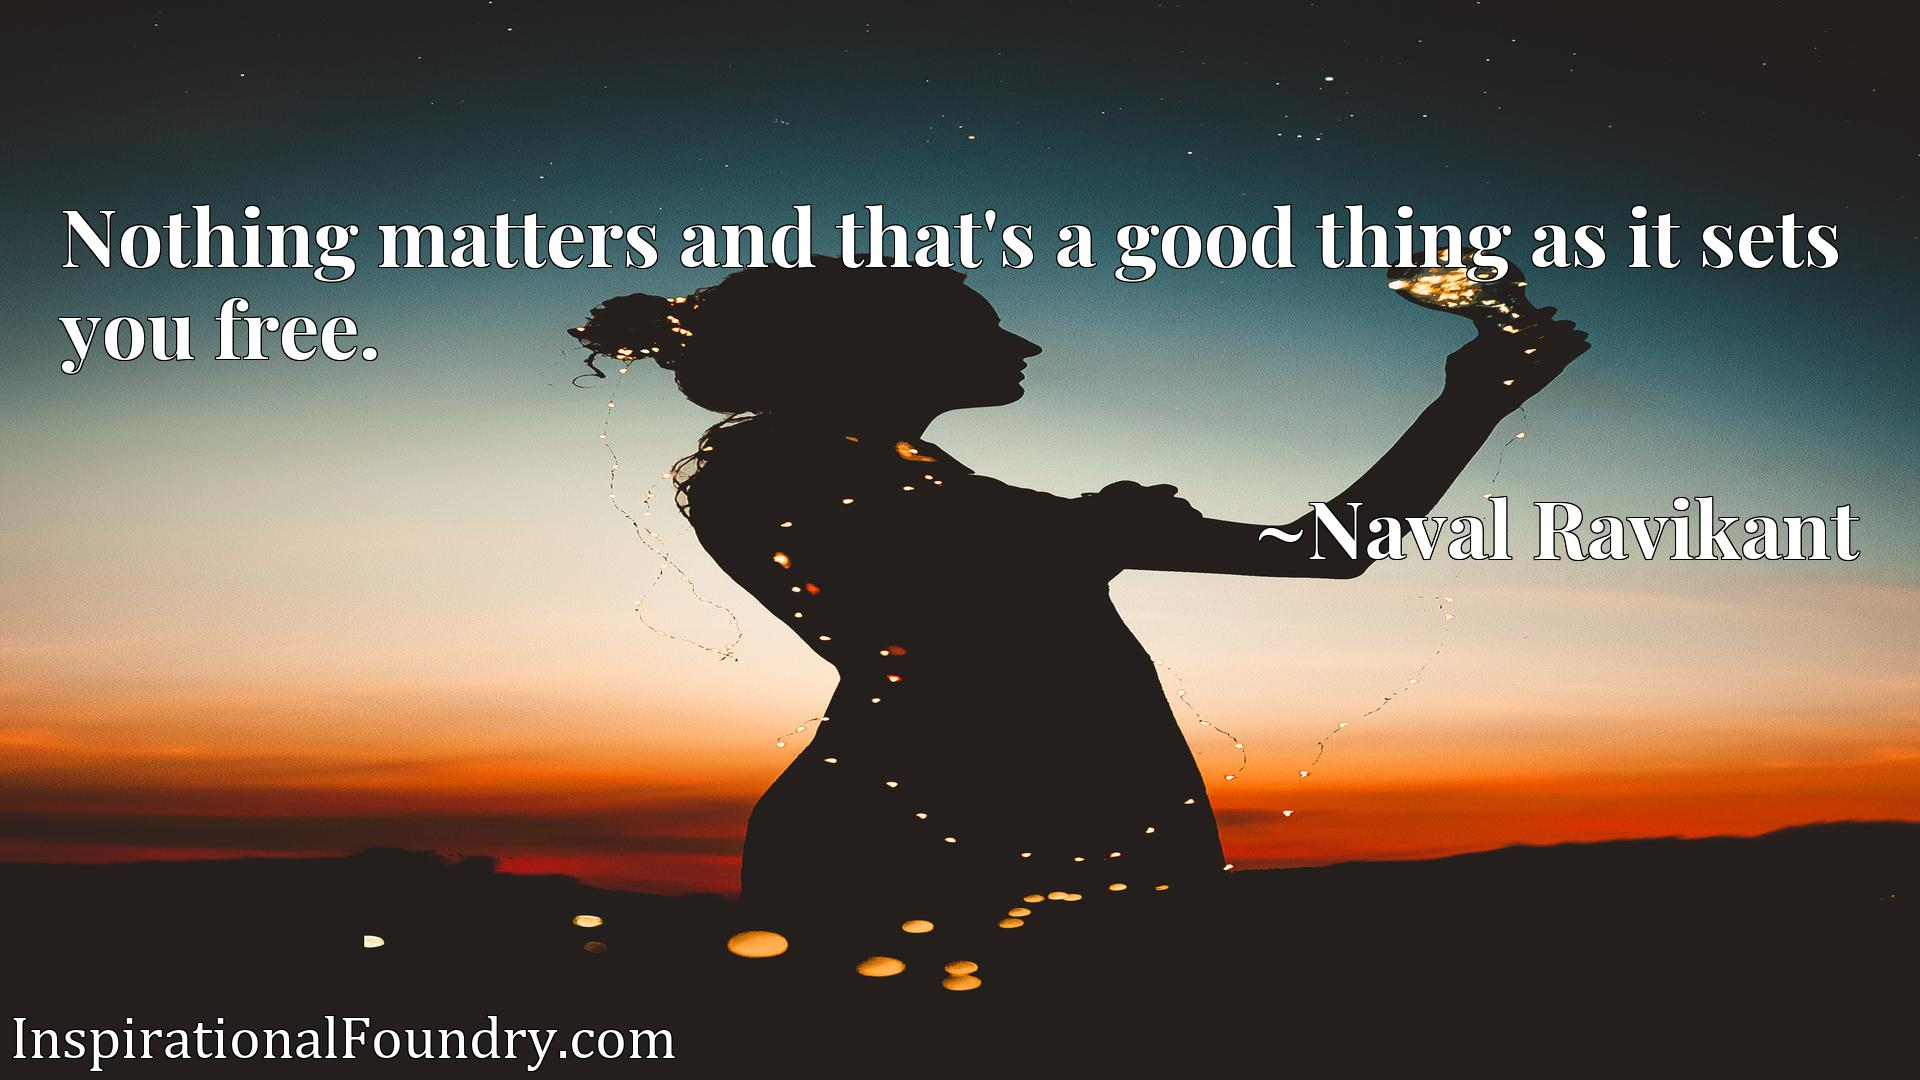 Nothing matters and that's a good thing as it sets you free.